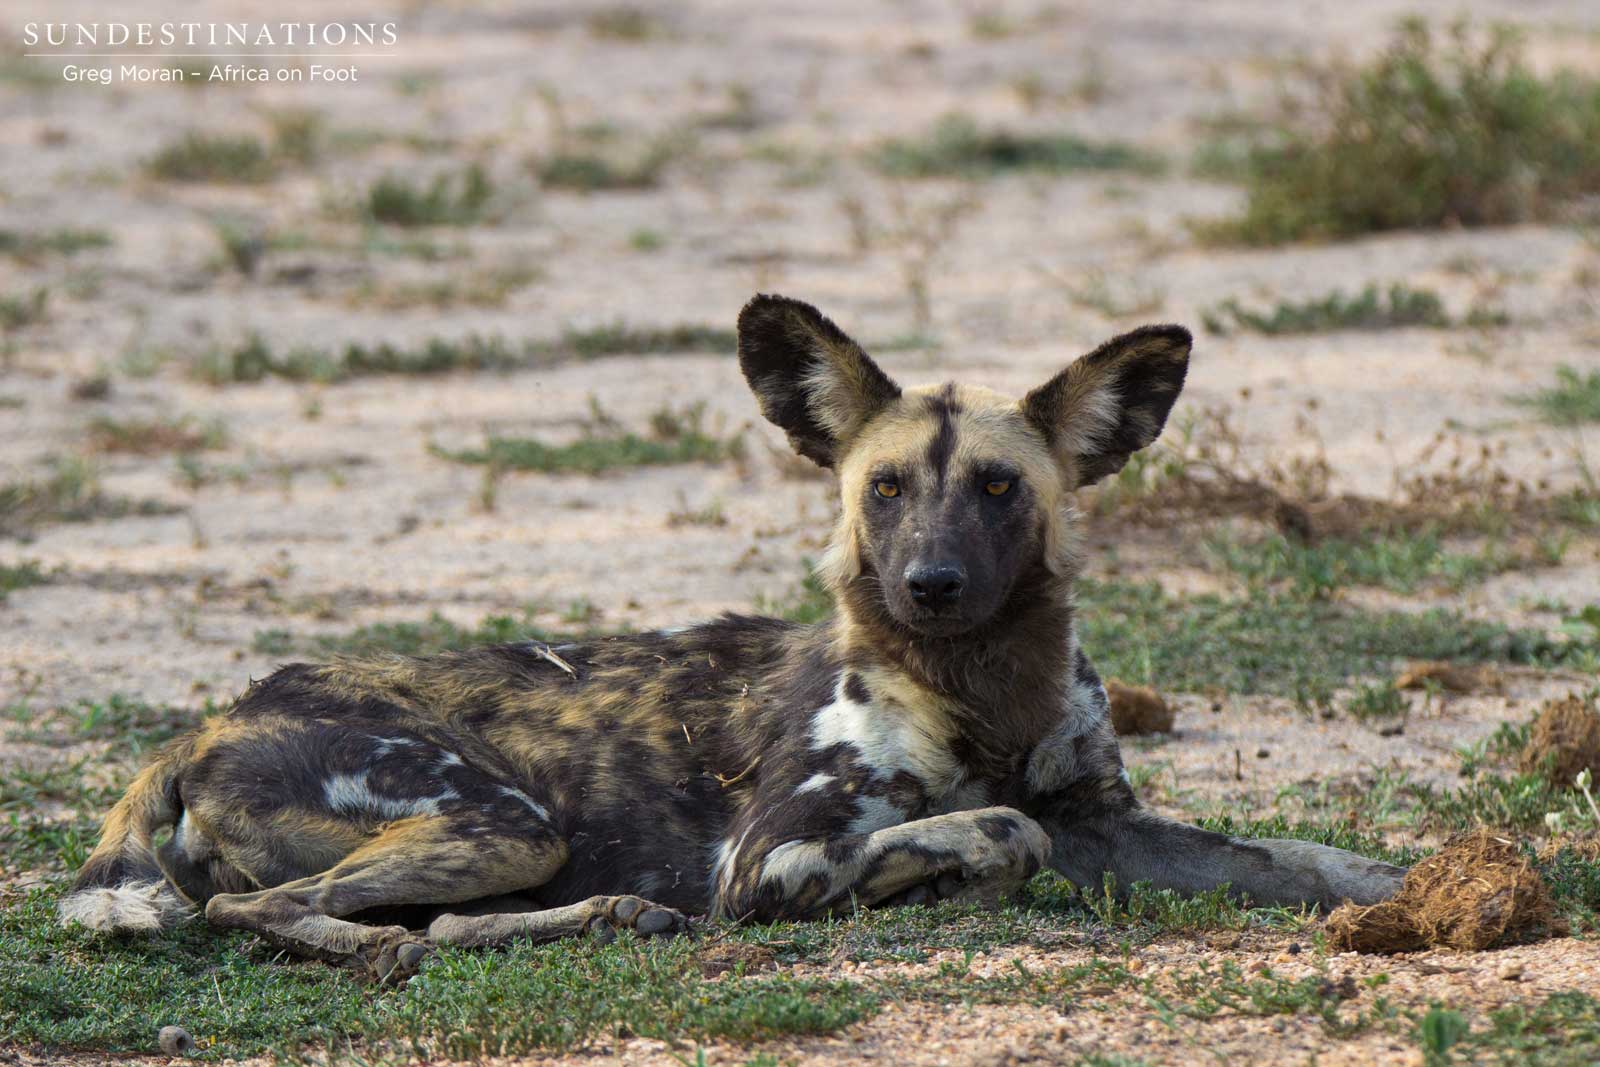 The wild dogs are back at Africa on Foot